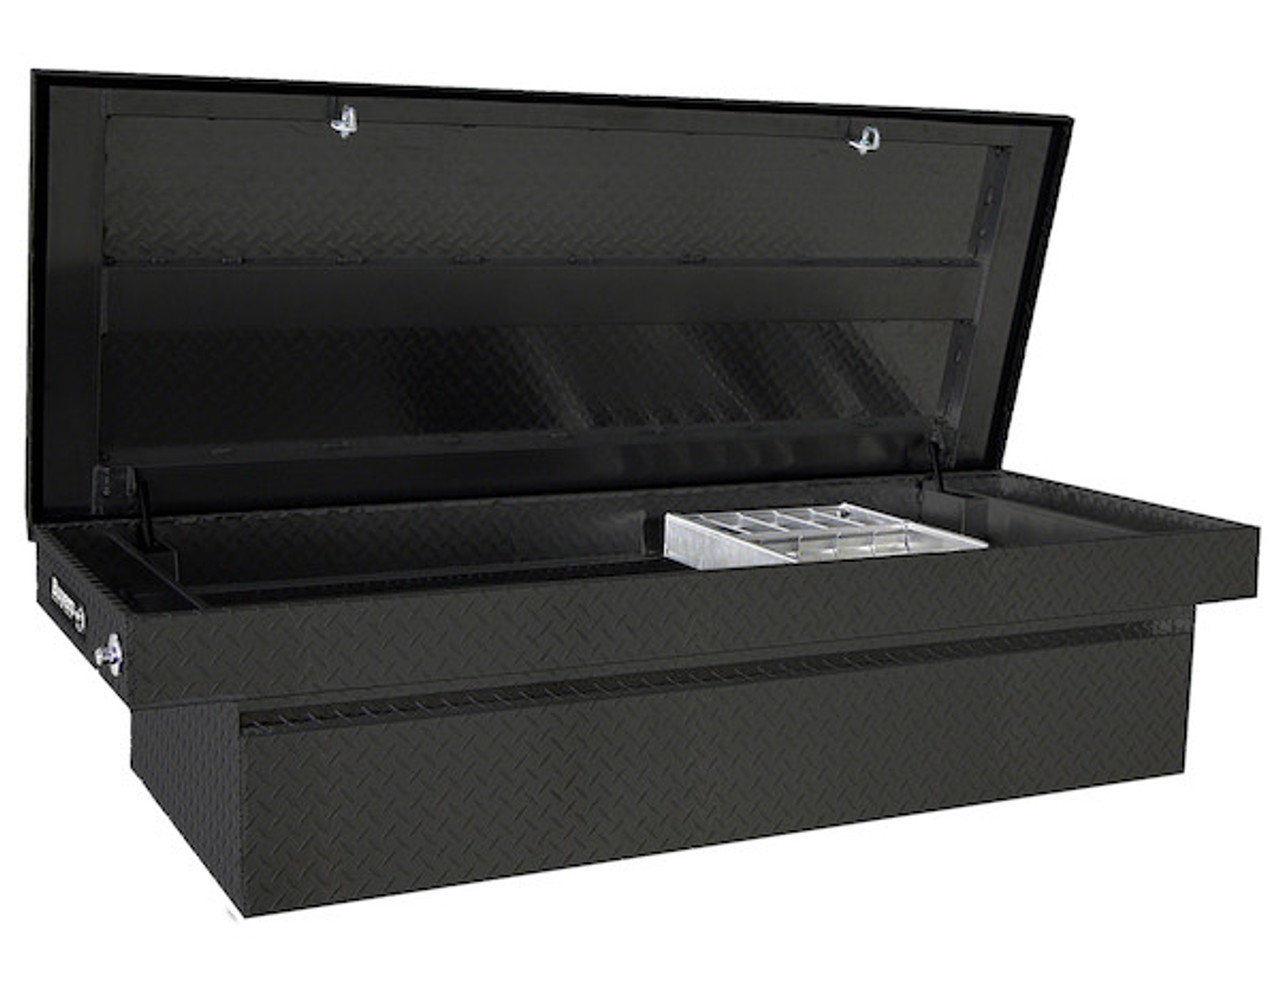 "1729315 BUYERS PRODUCTS BLACK DIAMOND TREAD ALUMINUM CROSSOVER TRUCK TOOLBOX 18""HX27""DX71""W"